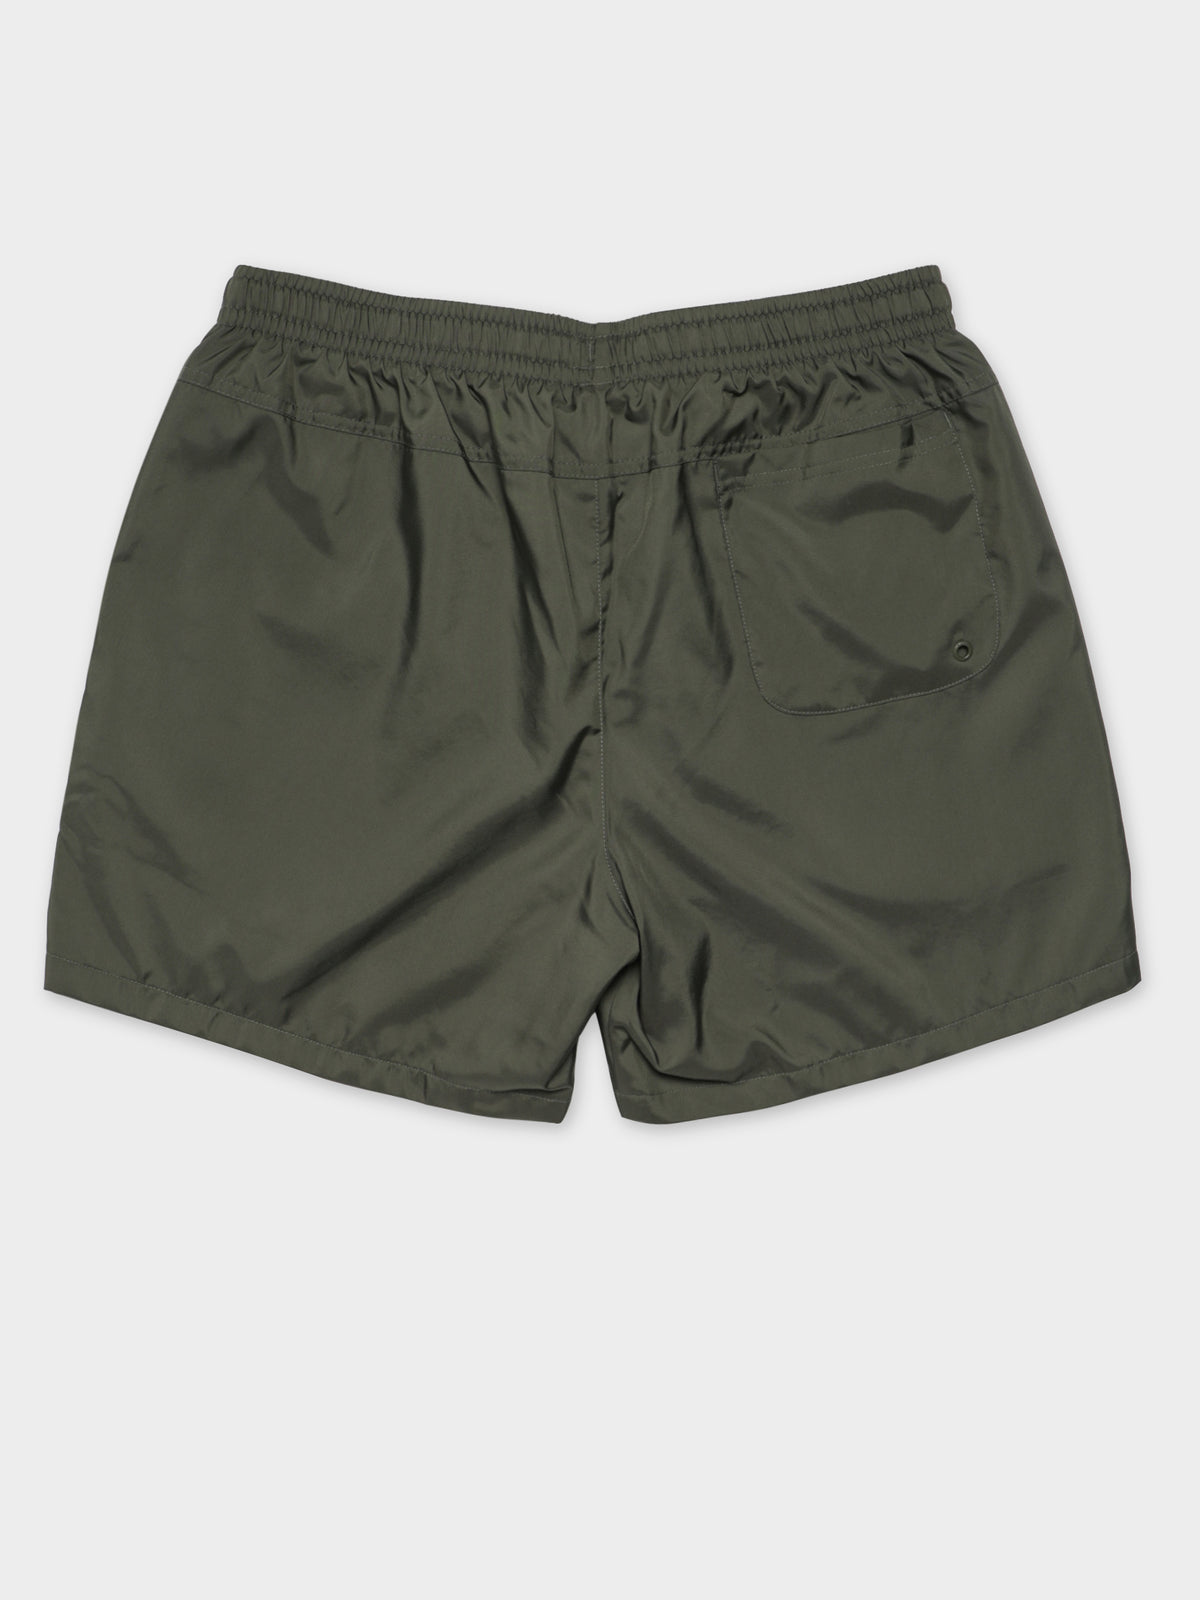 NSW Woven Shorts in Khaki